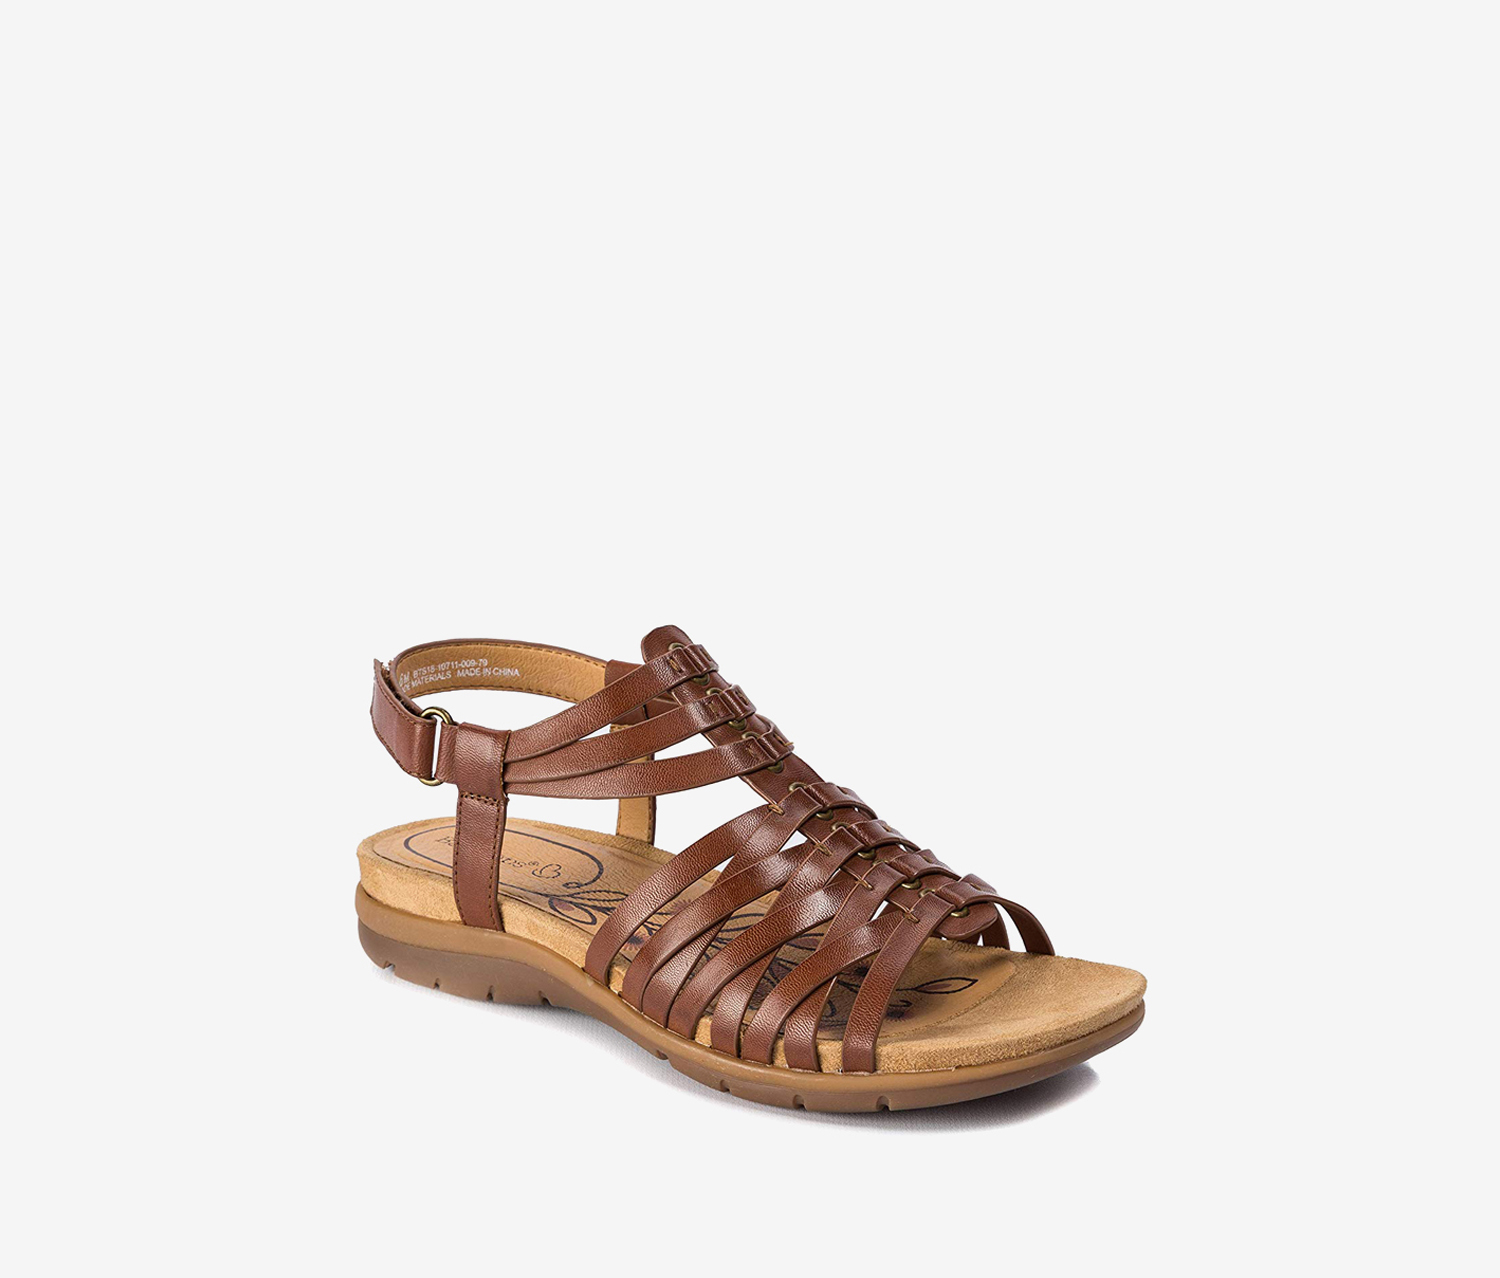 Womens Kirstey Open Toe Beach Ankle Strap Sandals, Brown